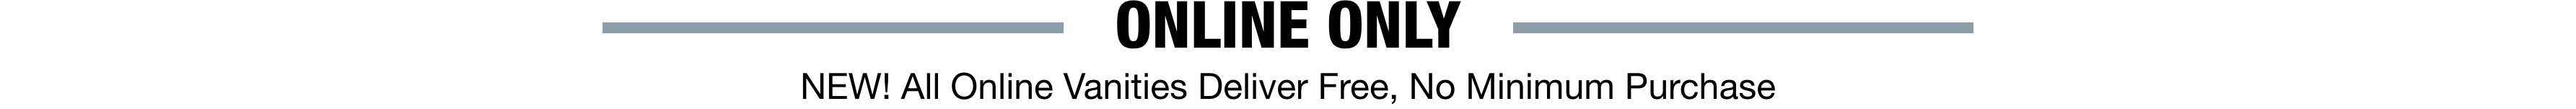 ONLINE ONLY NEW! All Online Vanities Deliver Free, No Minimum Purchase